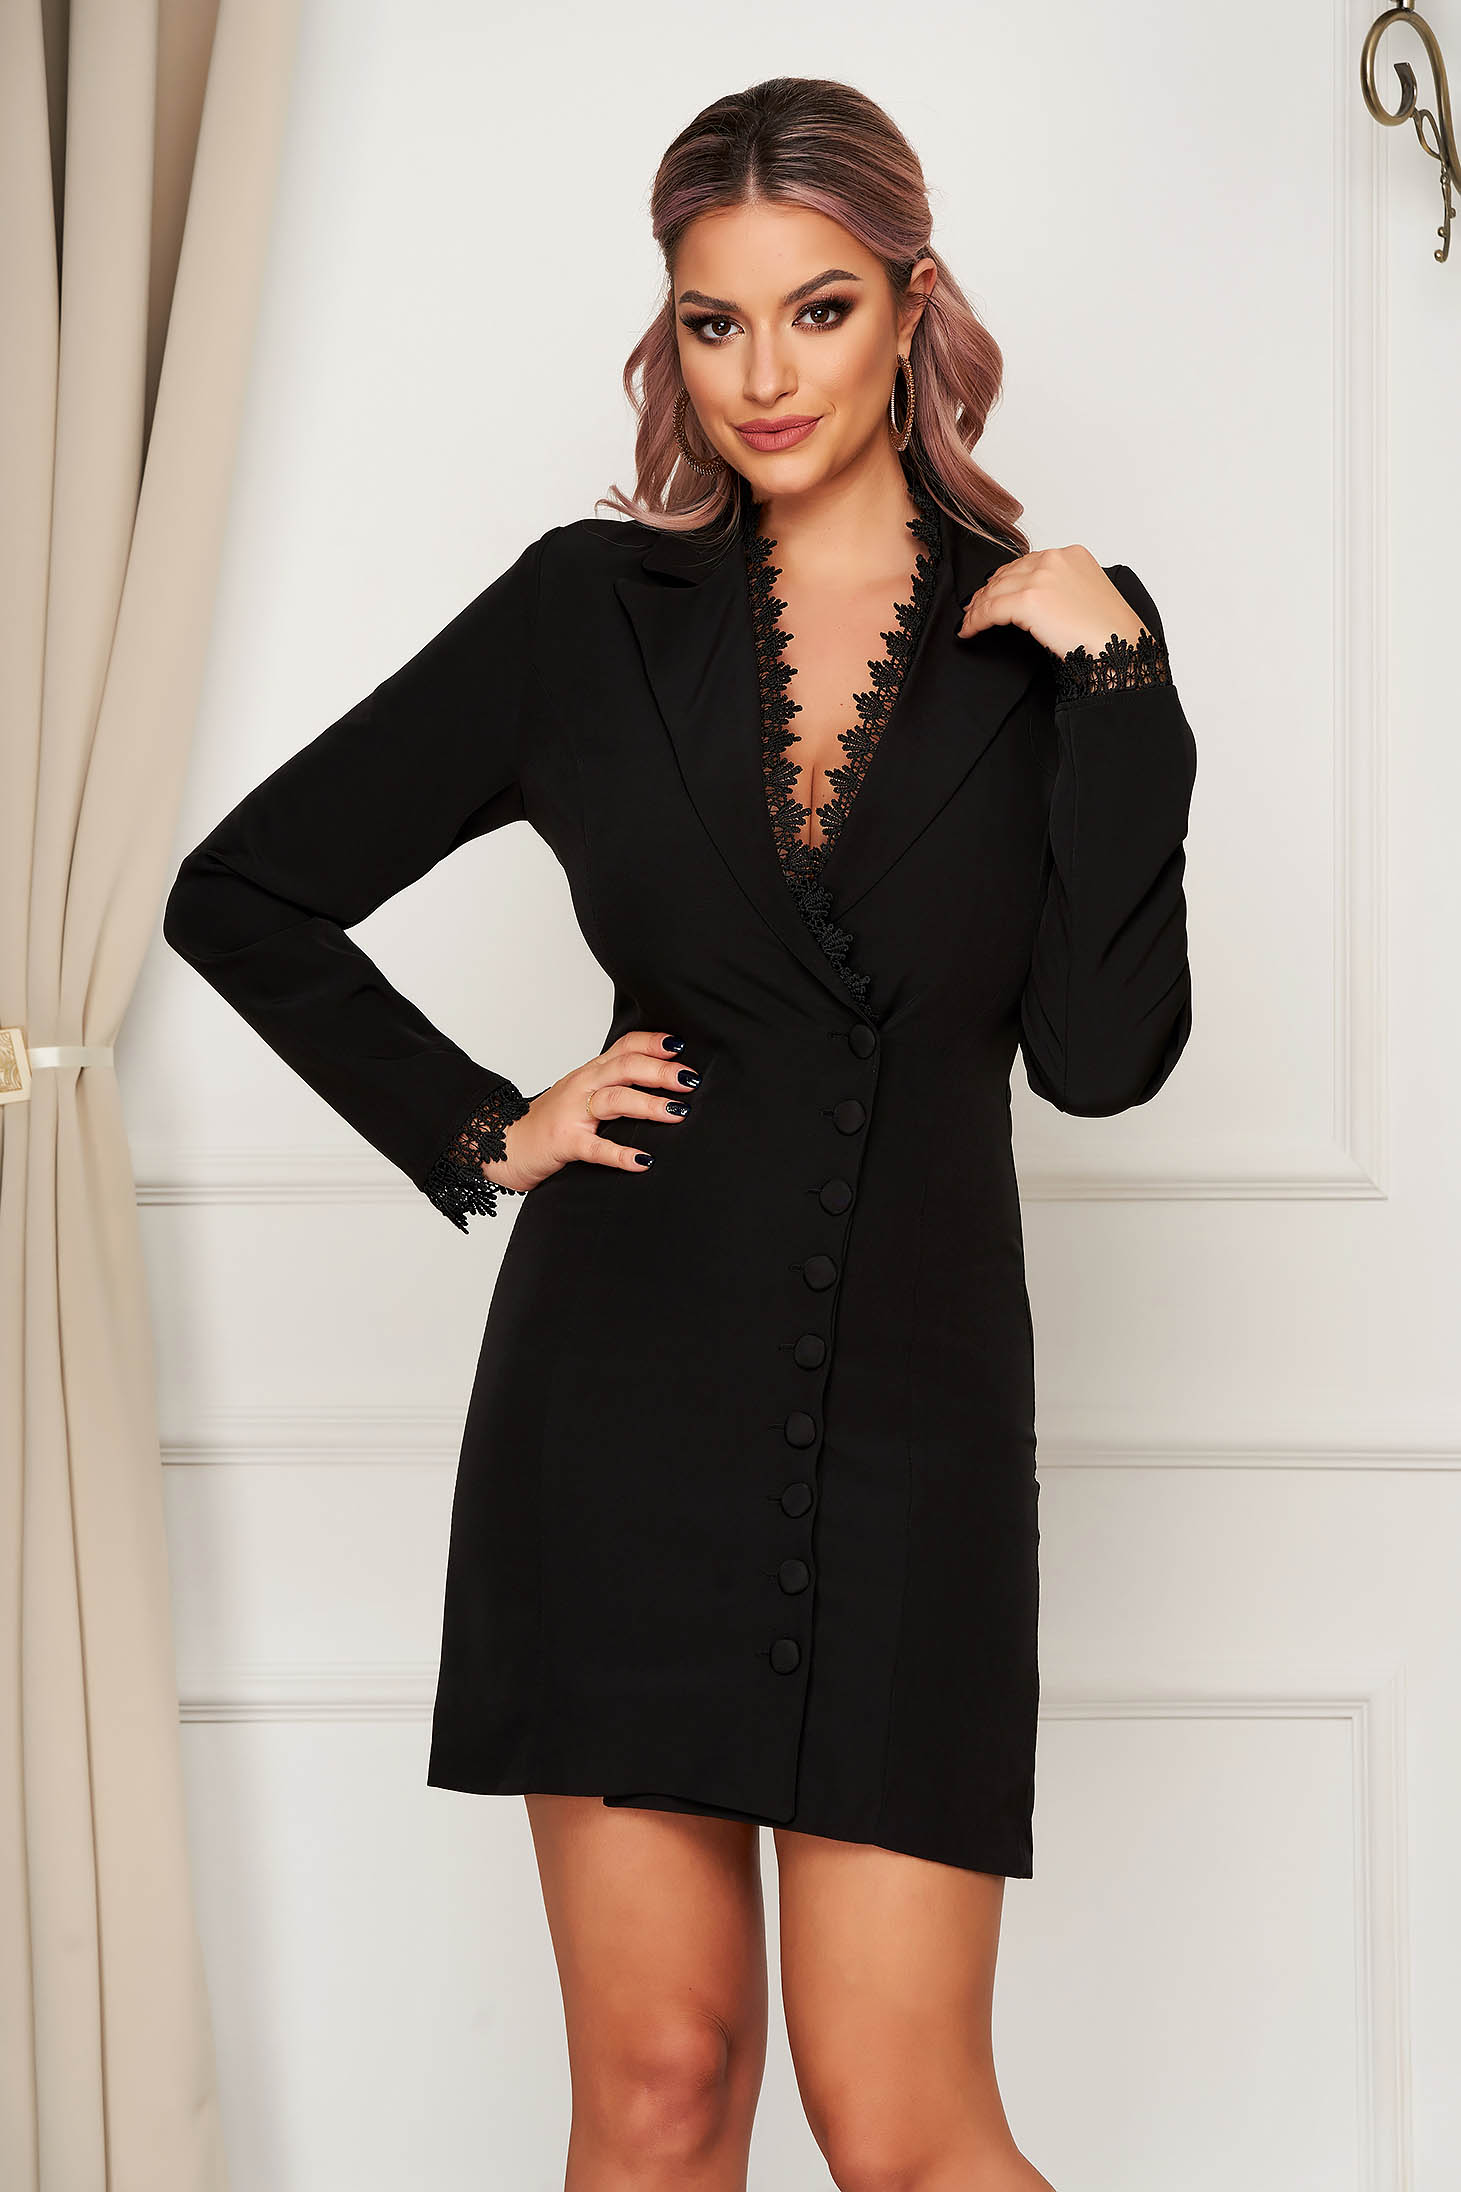 Black dress elegant short cut blazer type with embroidery details cloth